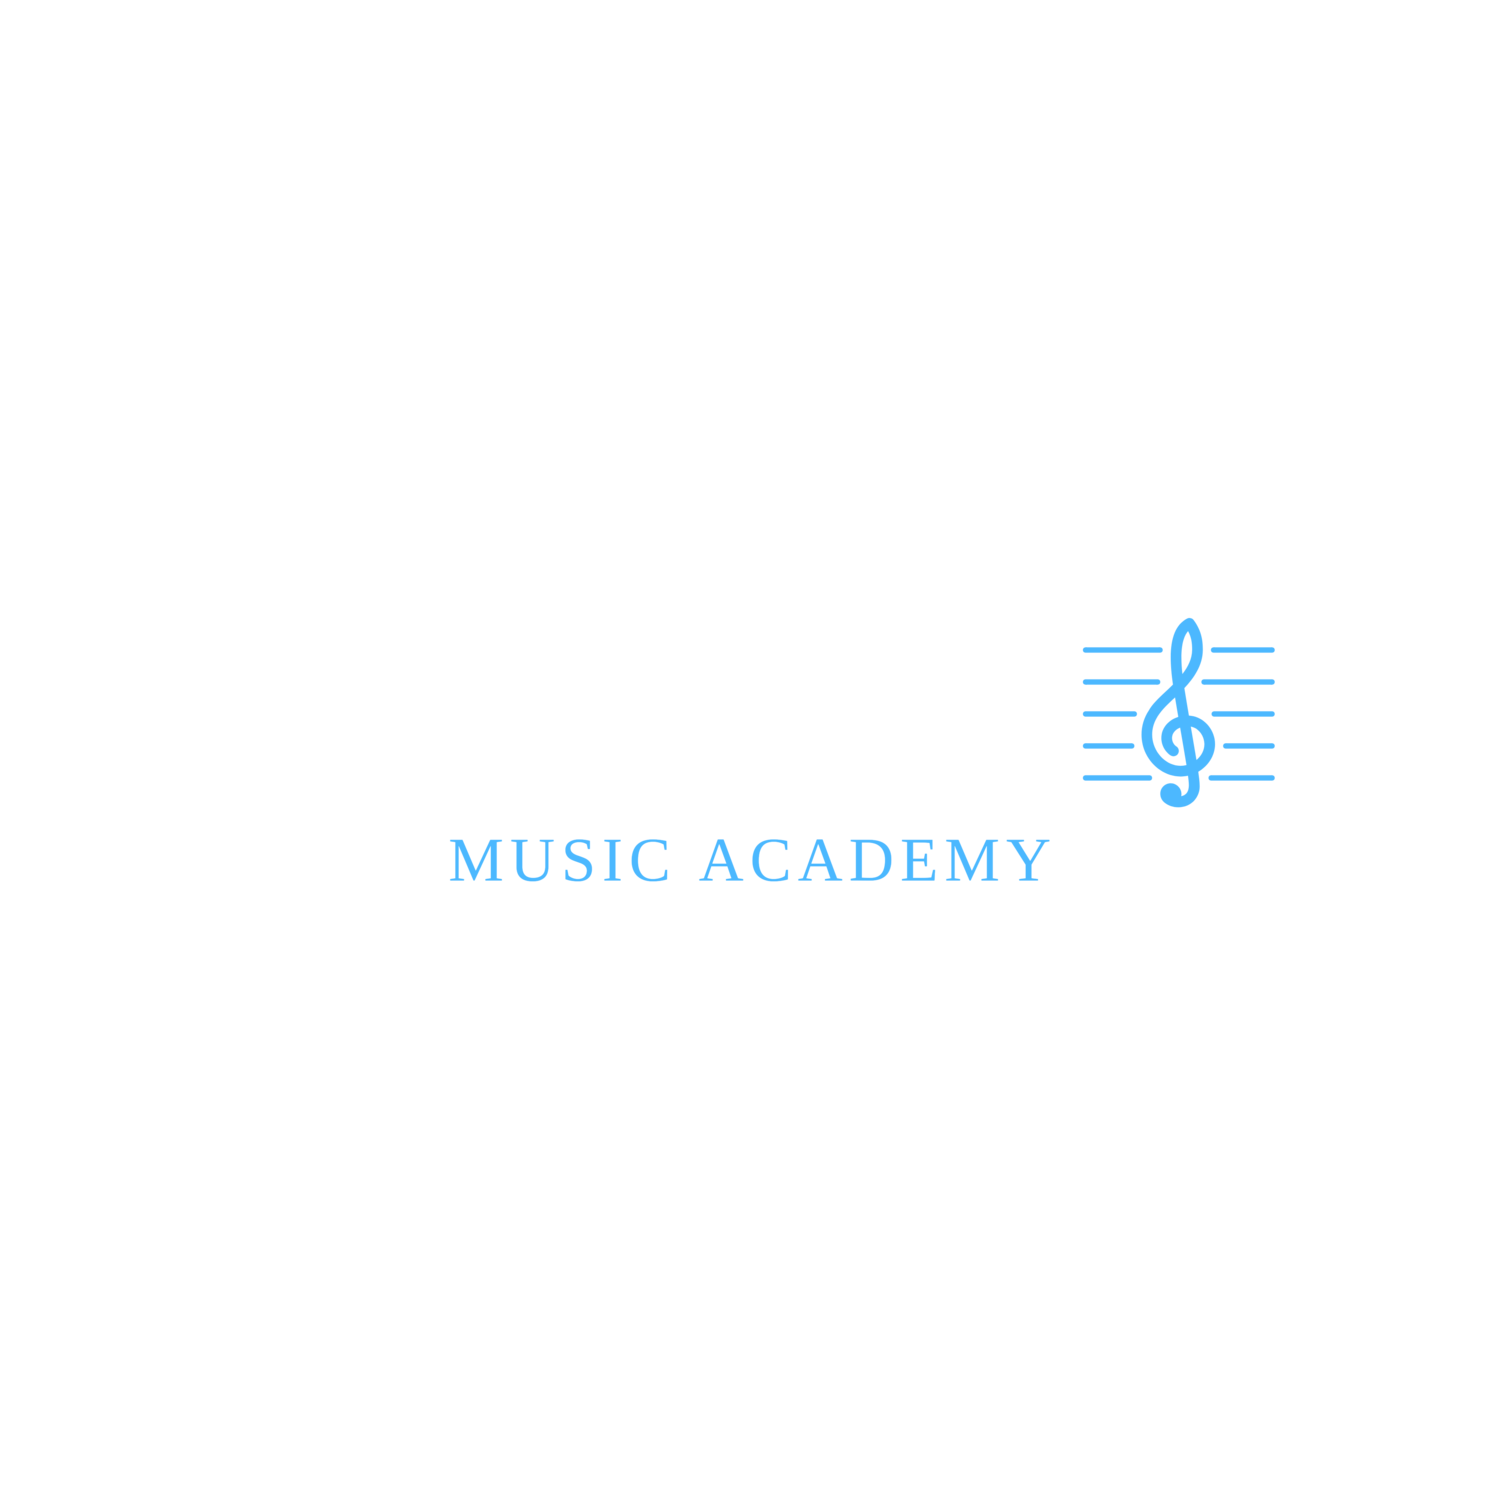 Journey Music Academy